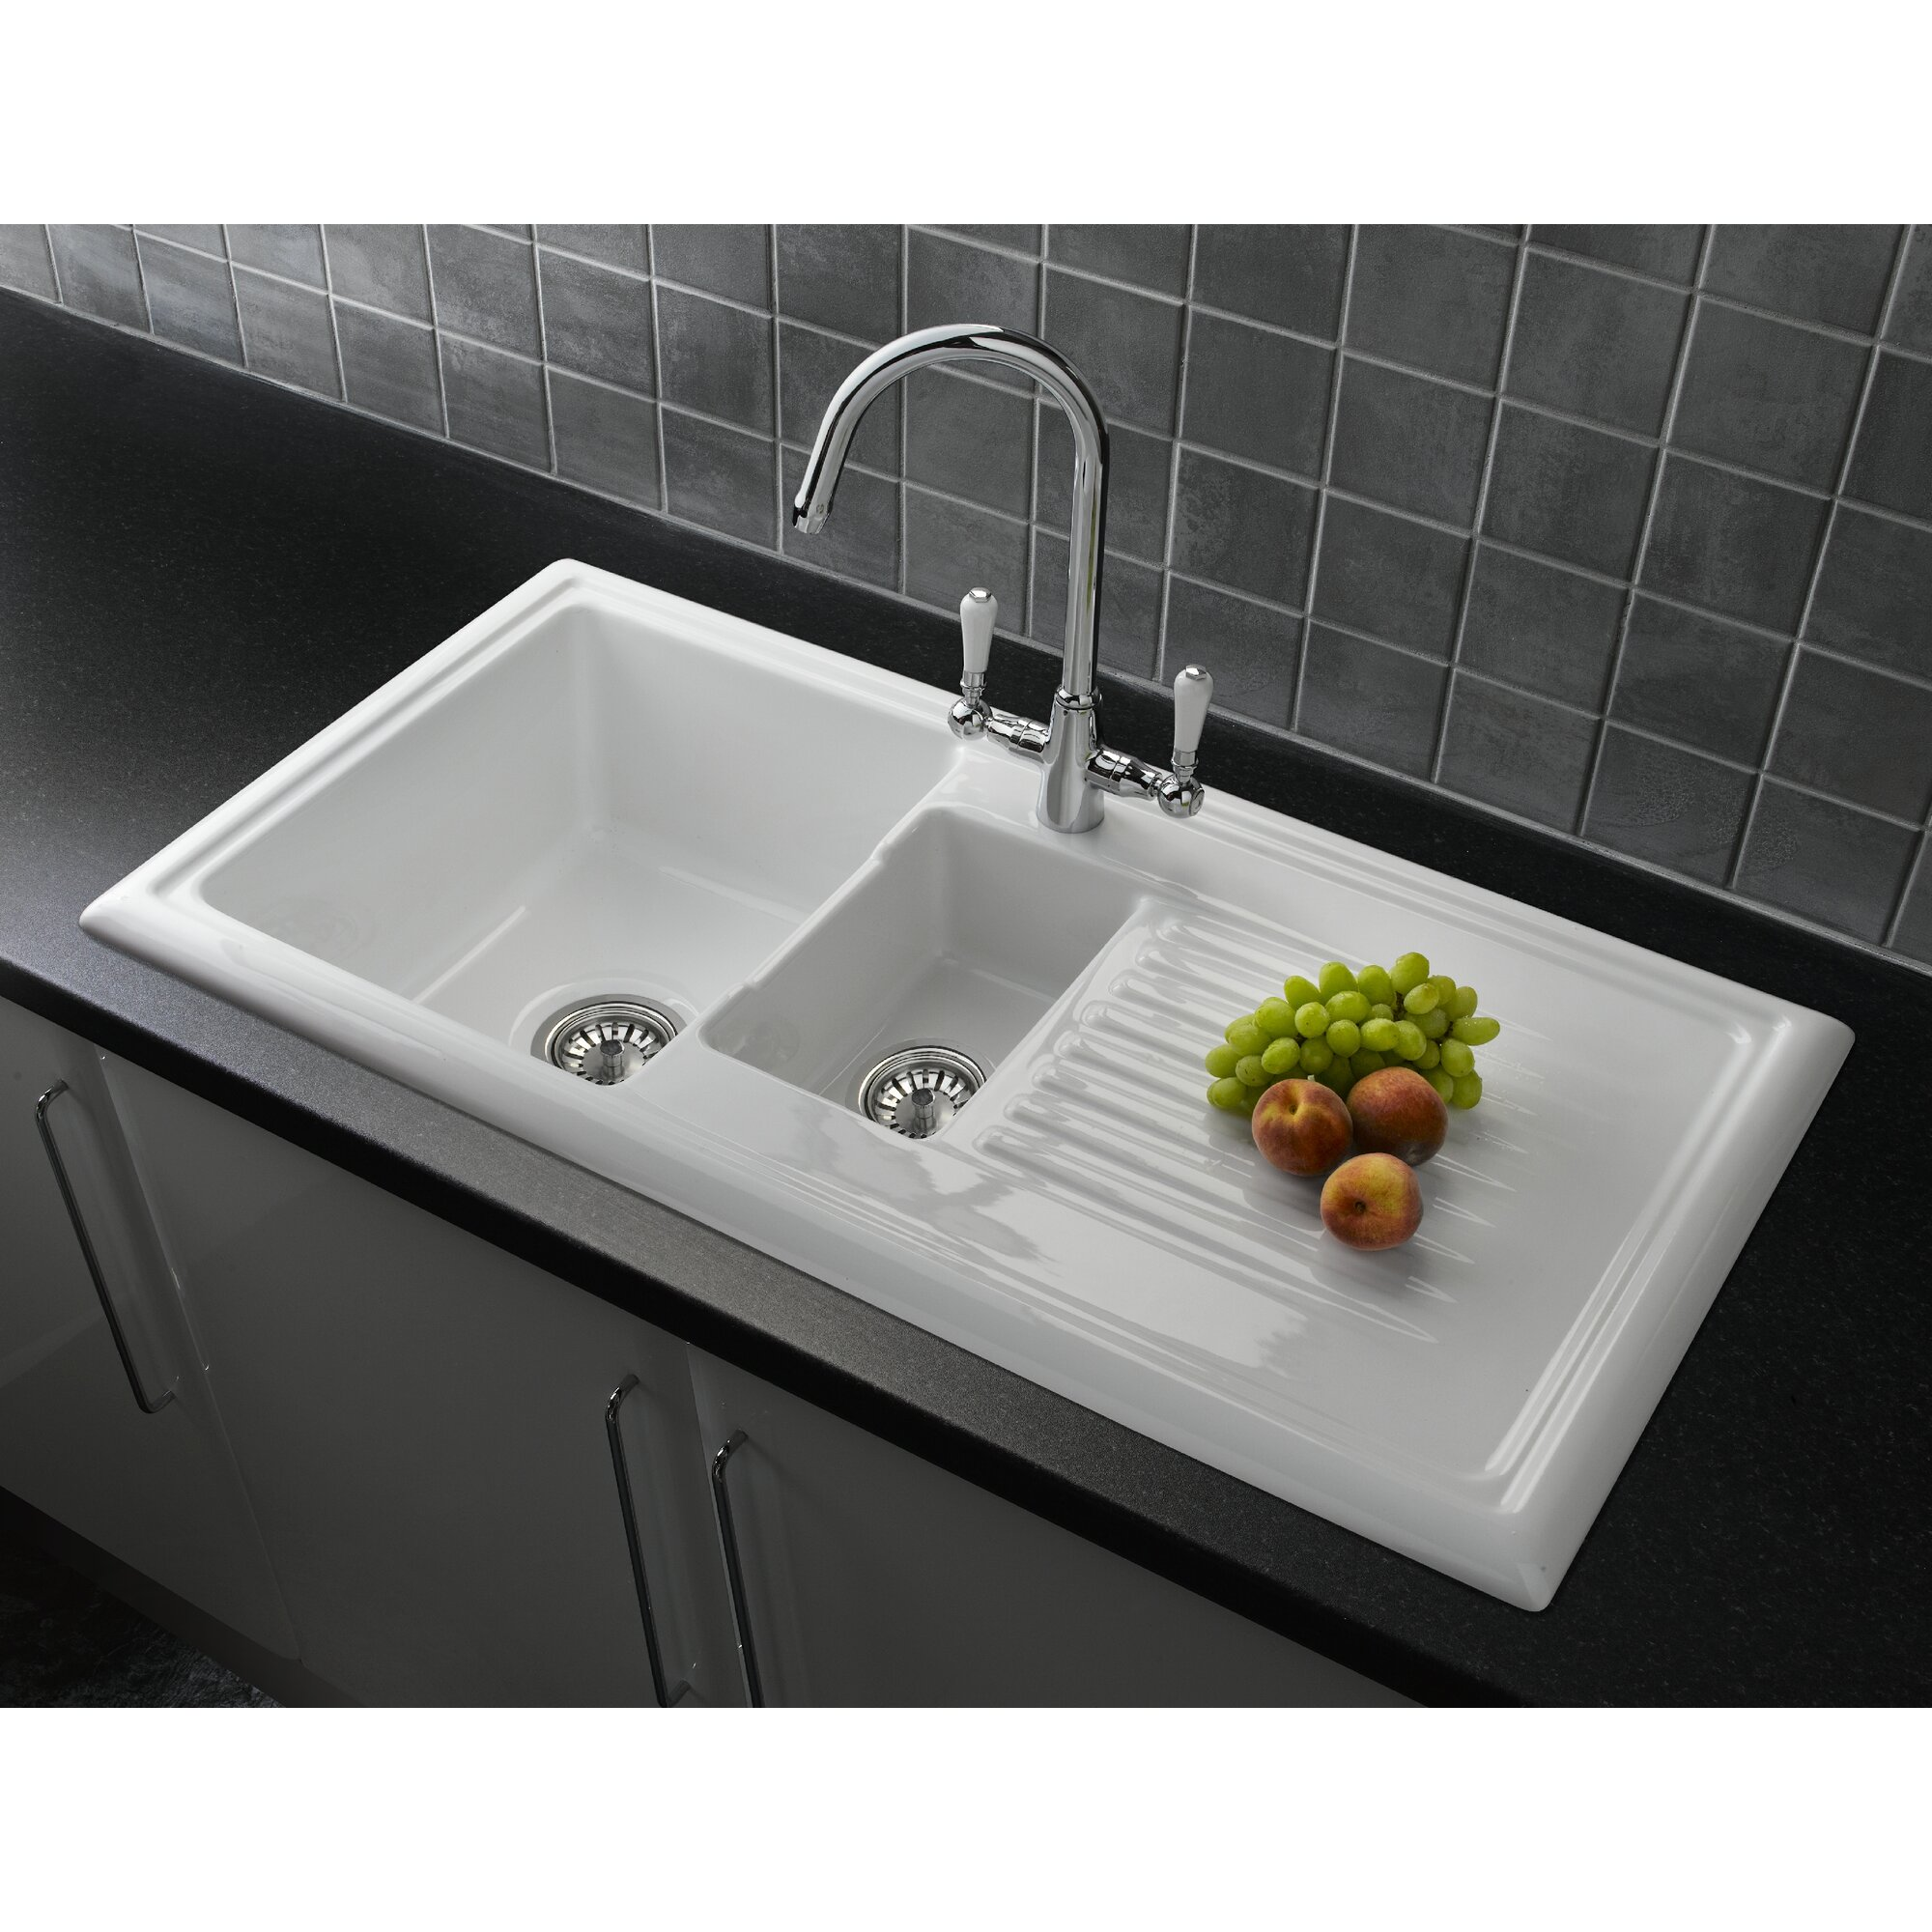 101cm x 52 5cm 1 1 2 inset kitchen sink with elbe tap and waste. Interior Design Ideas. Home Design Ideas